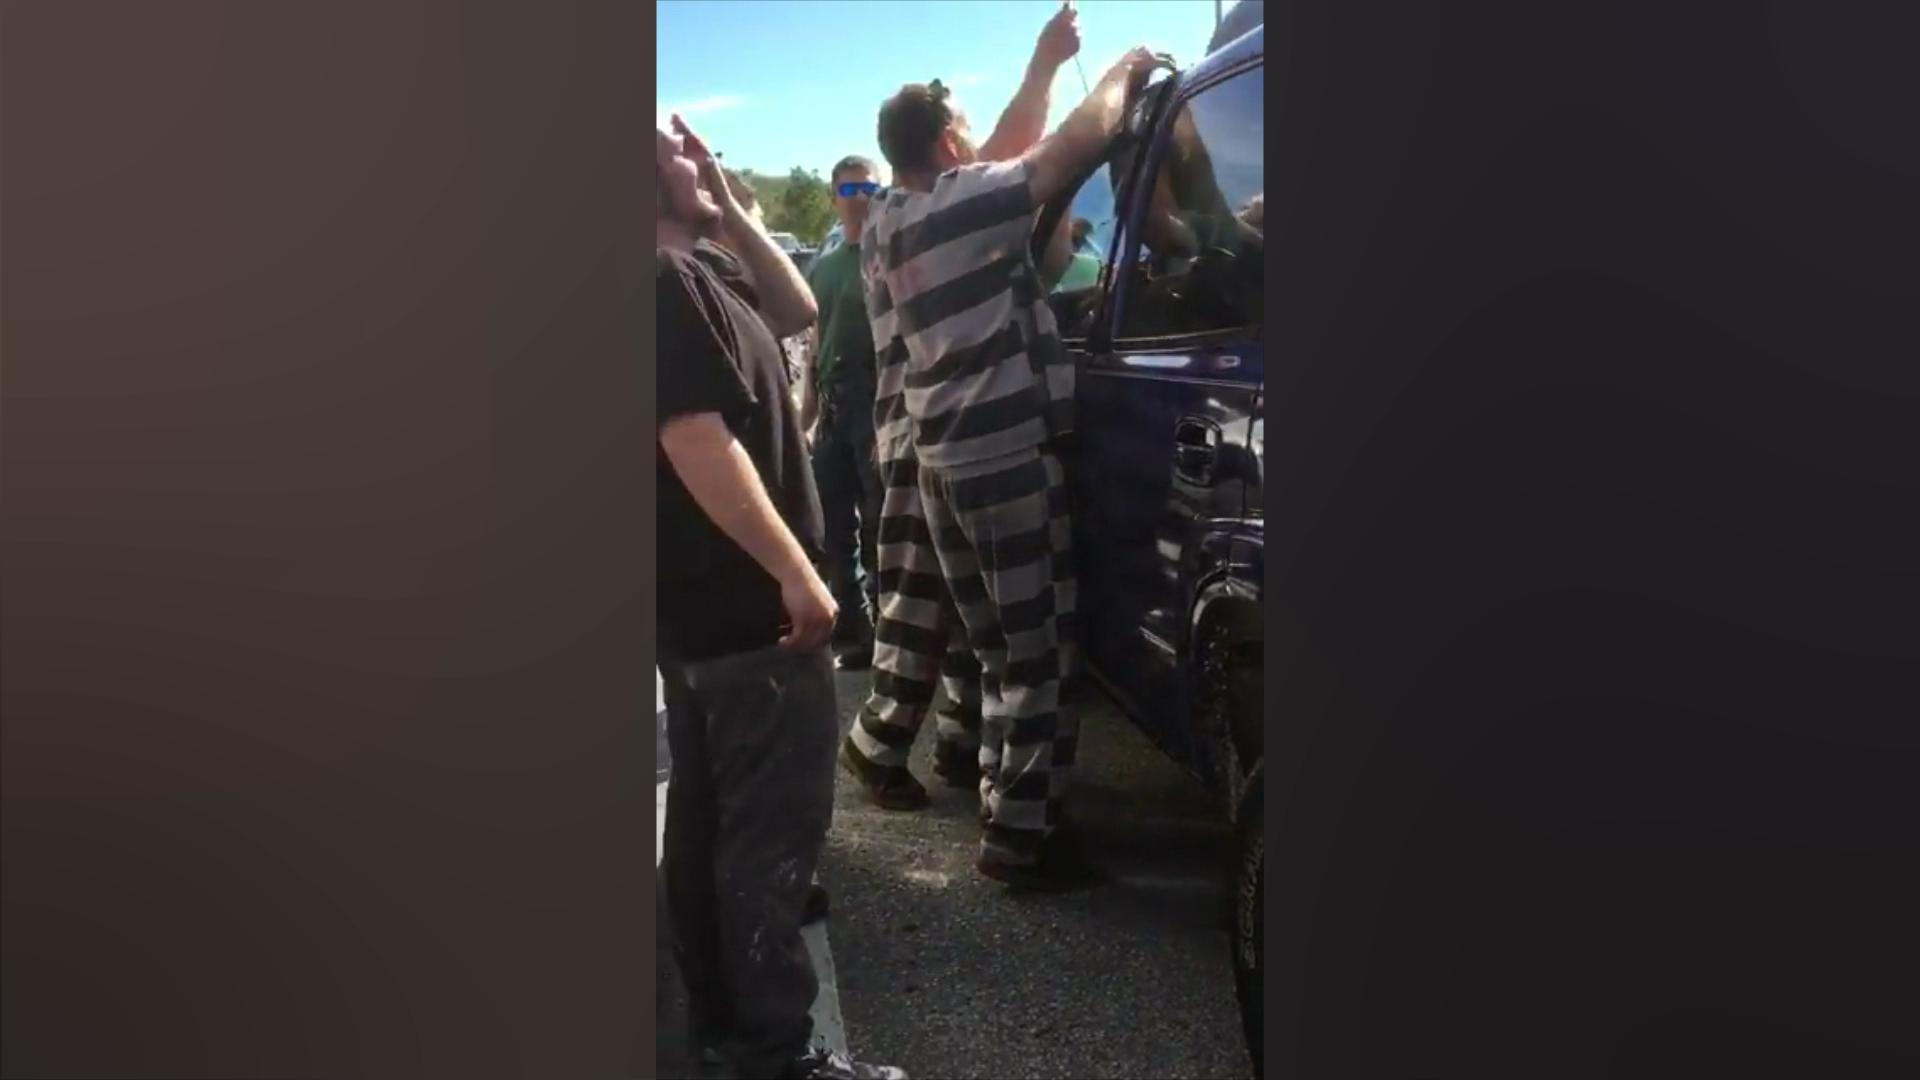 Inmates help deputies in Florida rescue infant accidentally locked in car